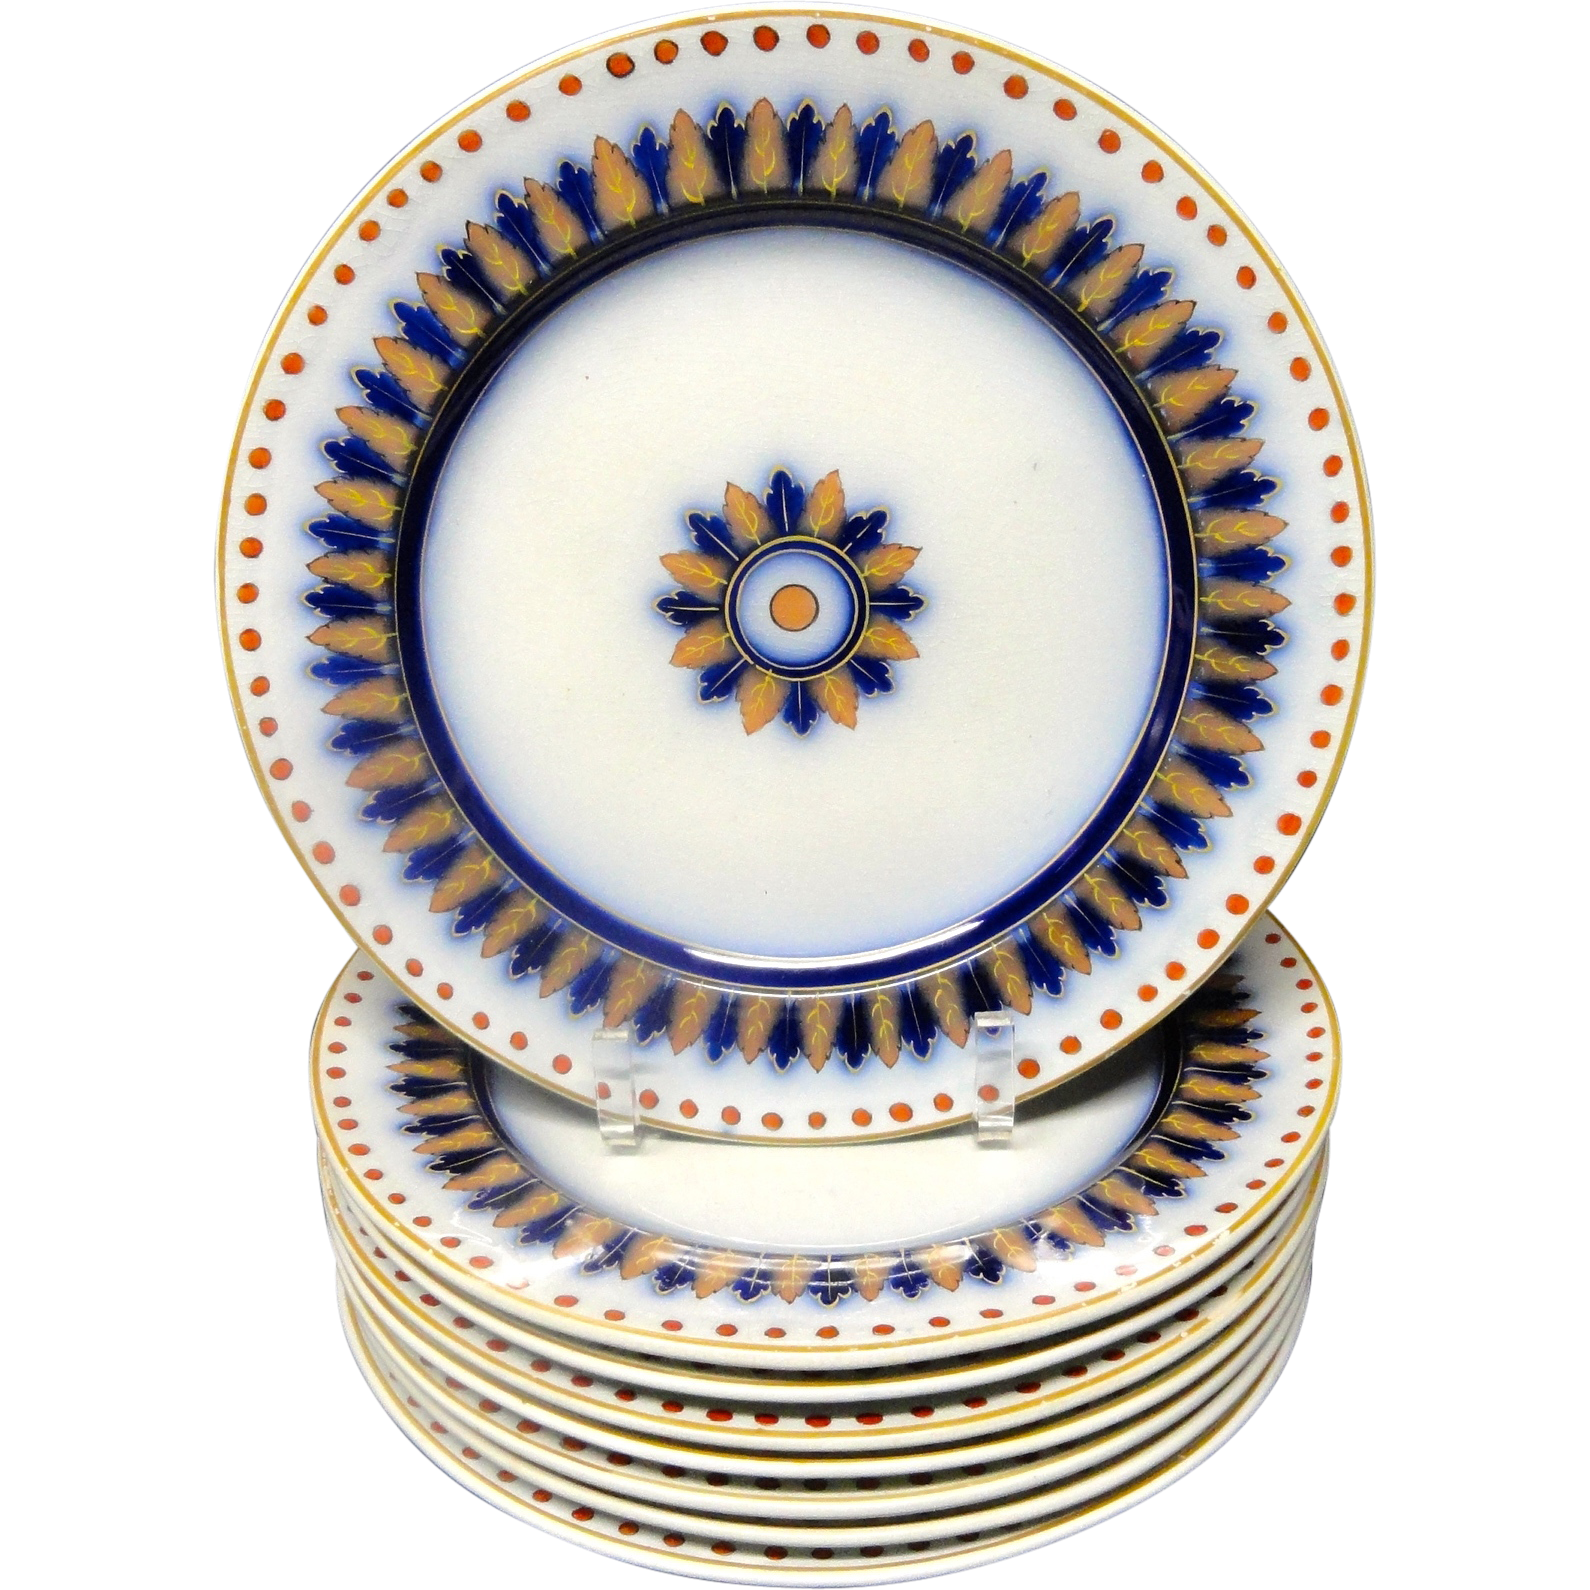 Antique victorian flow blue plates cyprus from